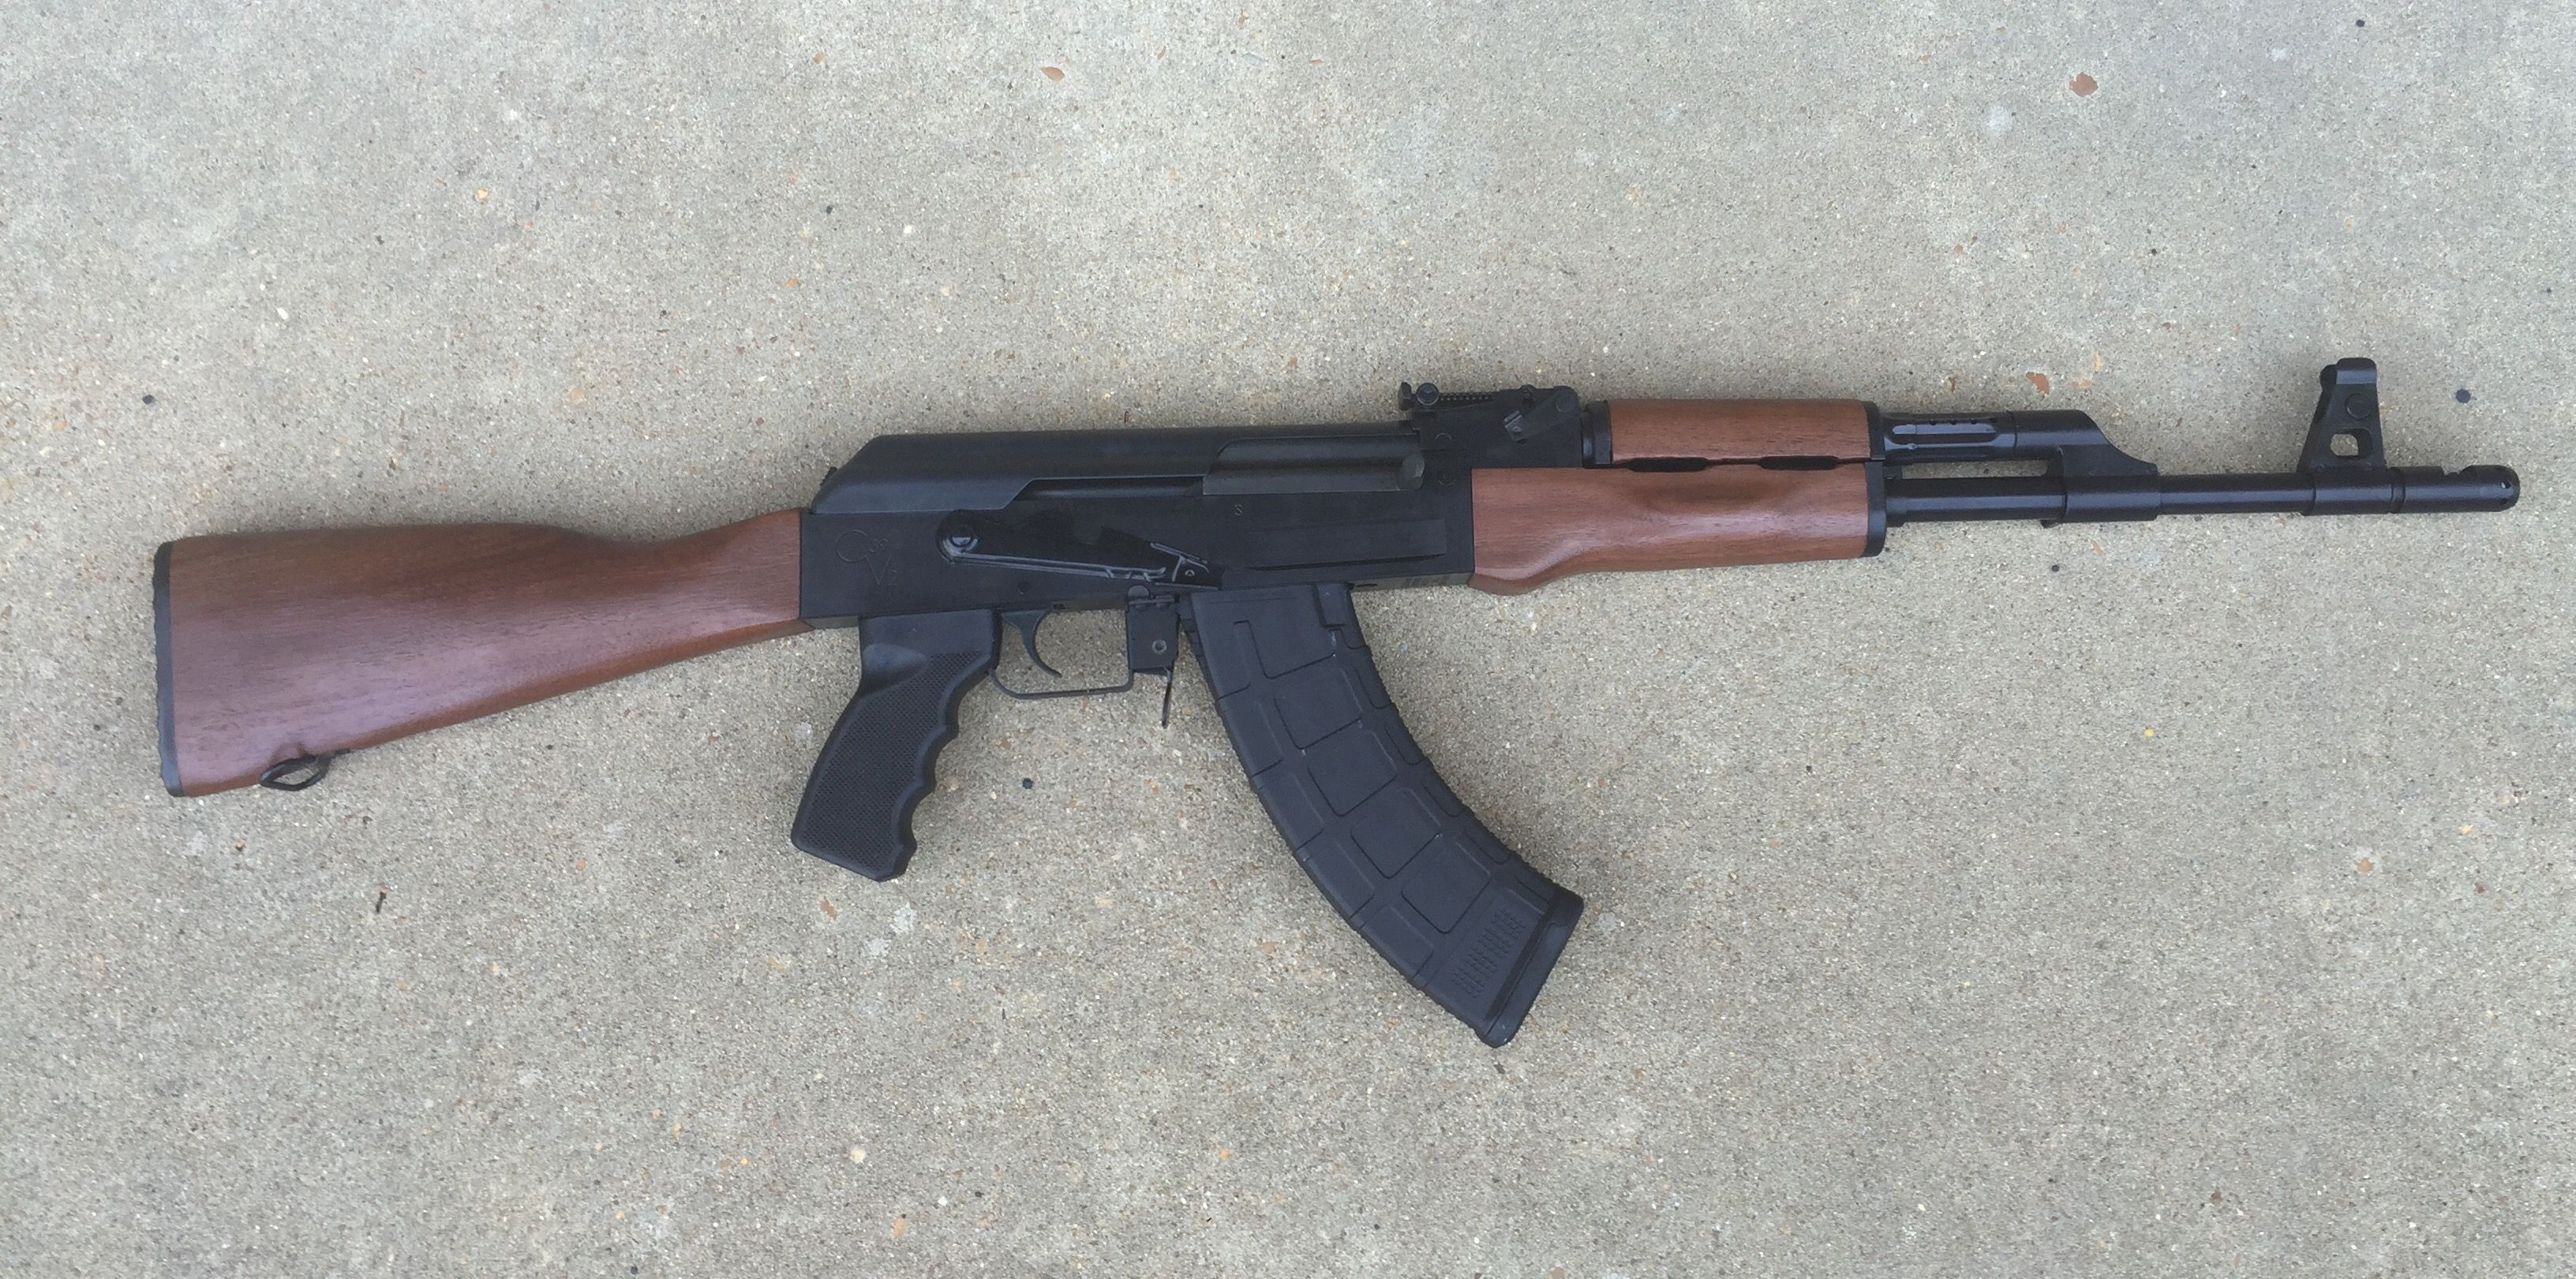 Century arms c39v2 ak in stock mississippiautoarms century arms c39v2 ak in stock mississippiautoarms altavistaventures Image collections